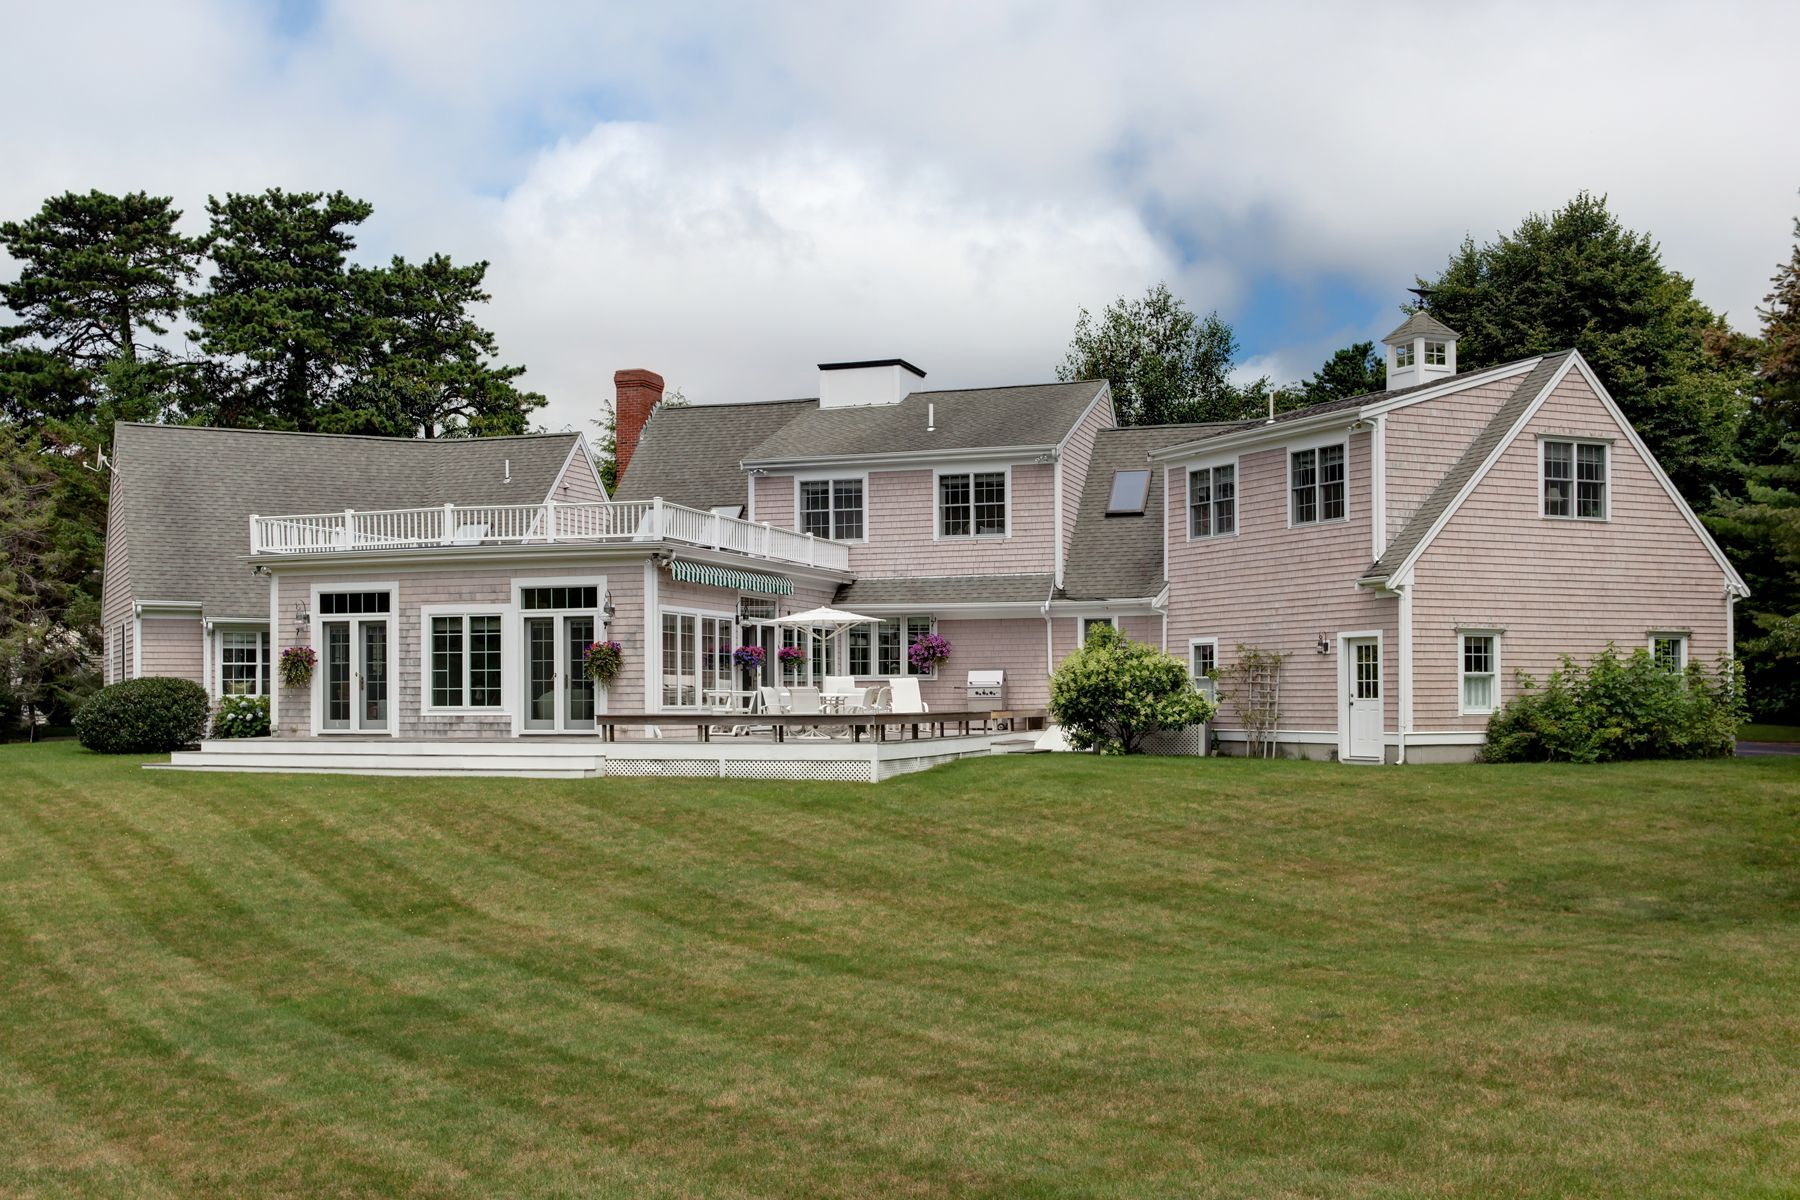 Single Family Homes for Sale at 47 Farm Valley Rd, Osterville, MA 47 Farm Valley Rd Osterville, Massachusetts 02655 United States